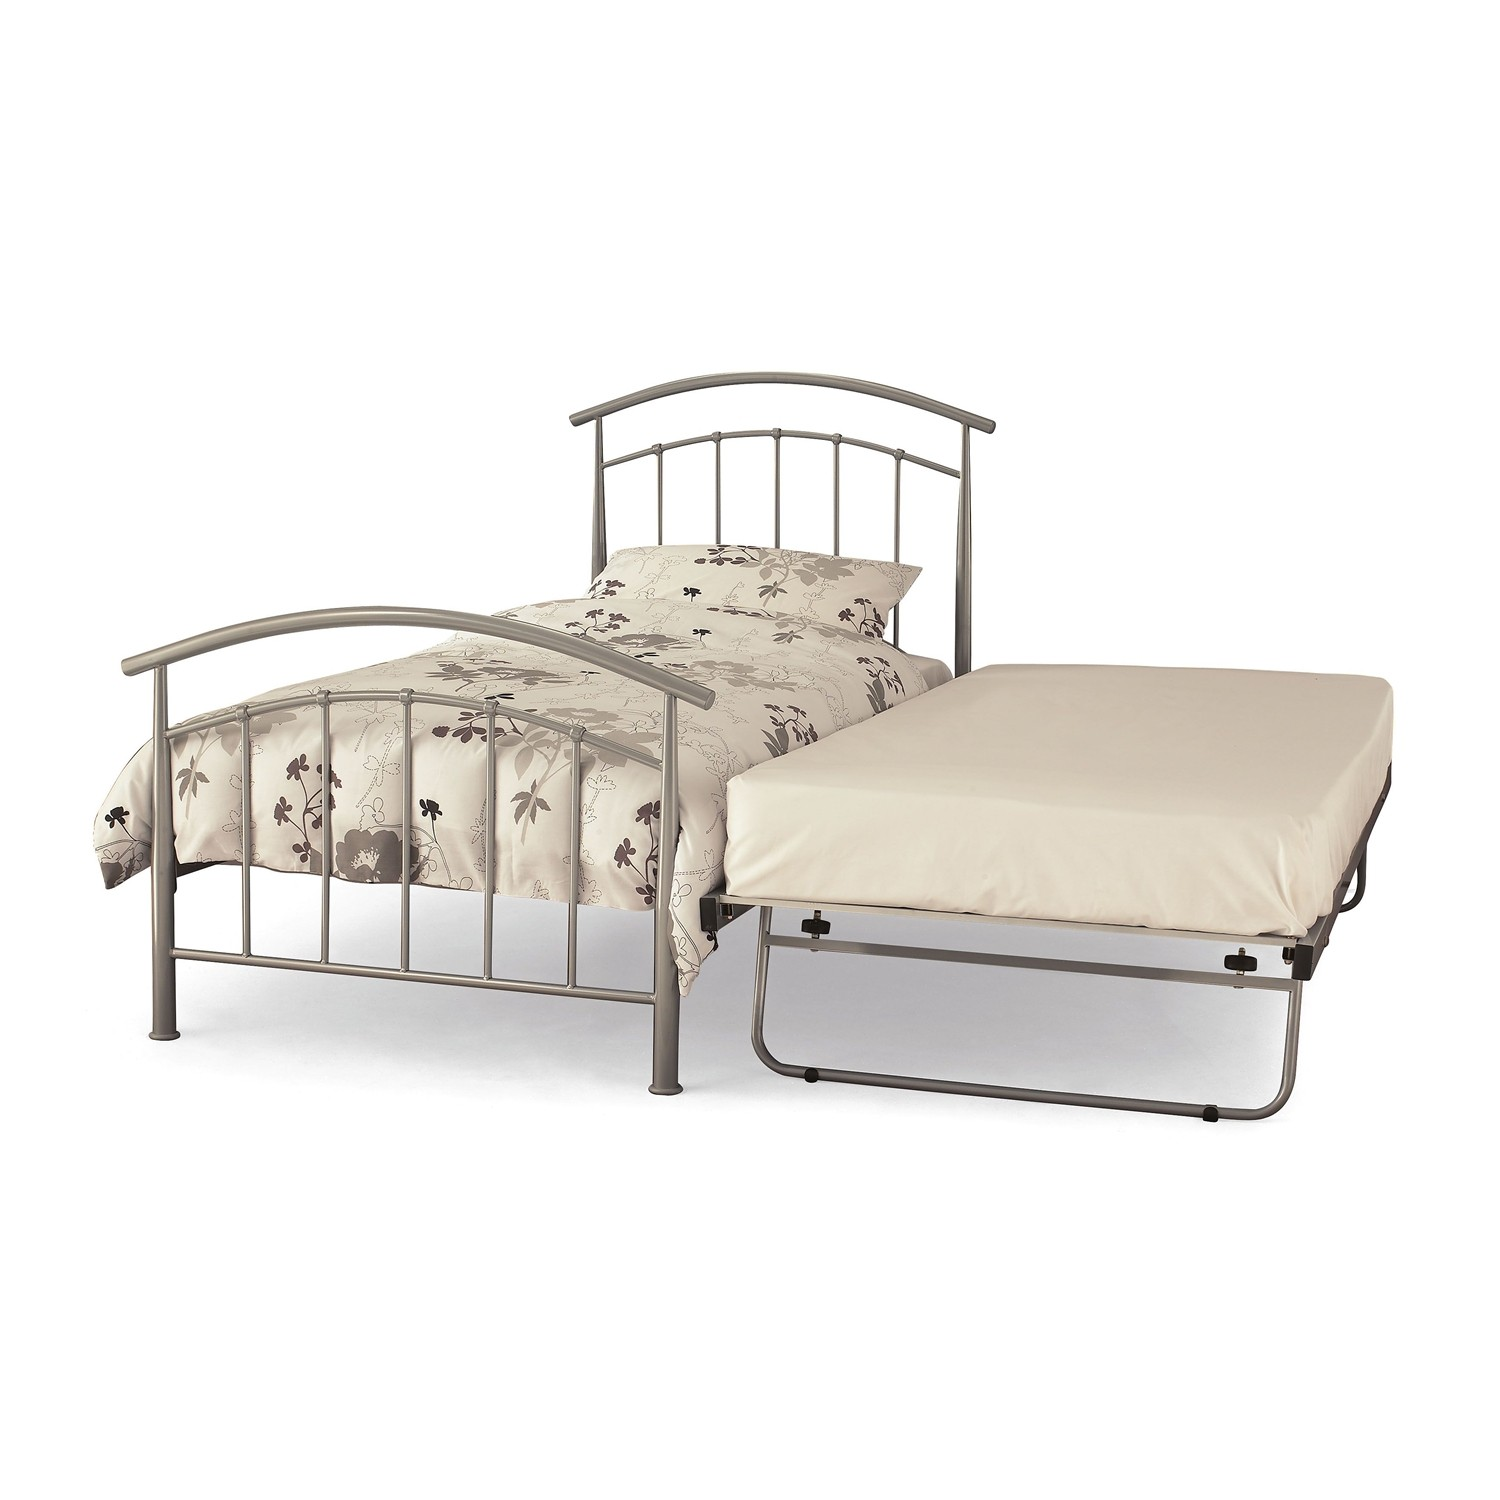 Casa mercury small single guest bed leekes for Small single bed